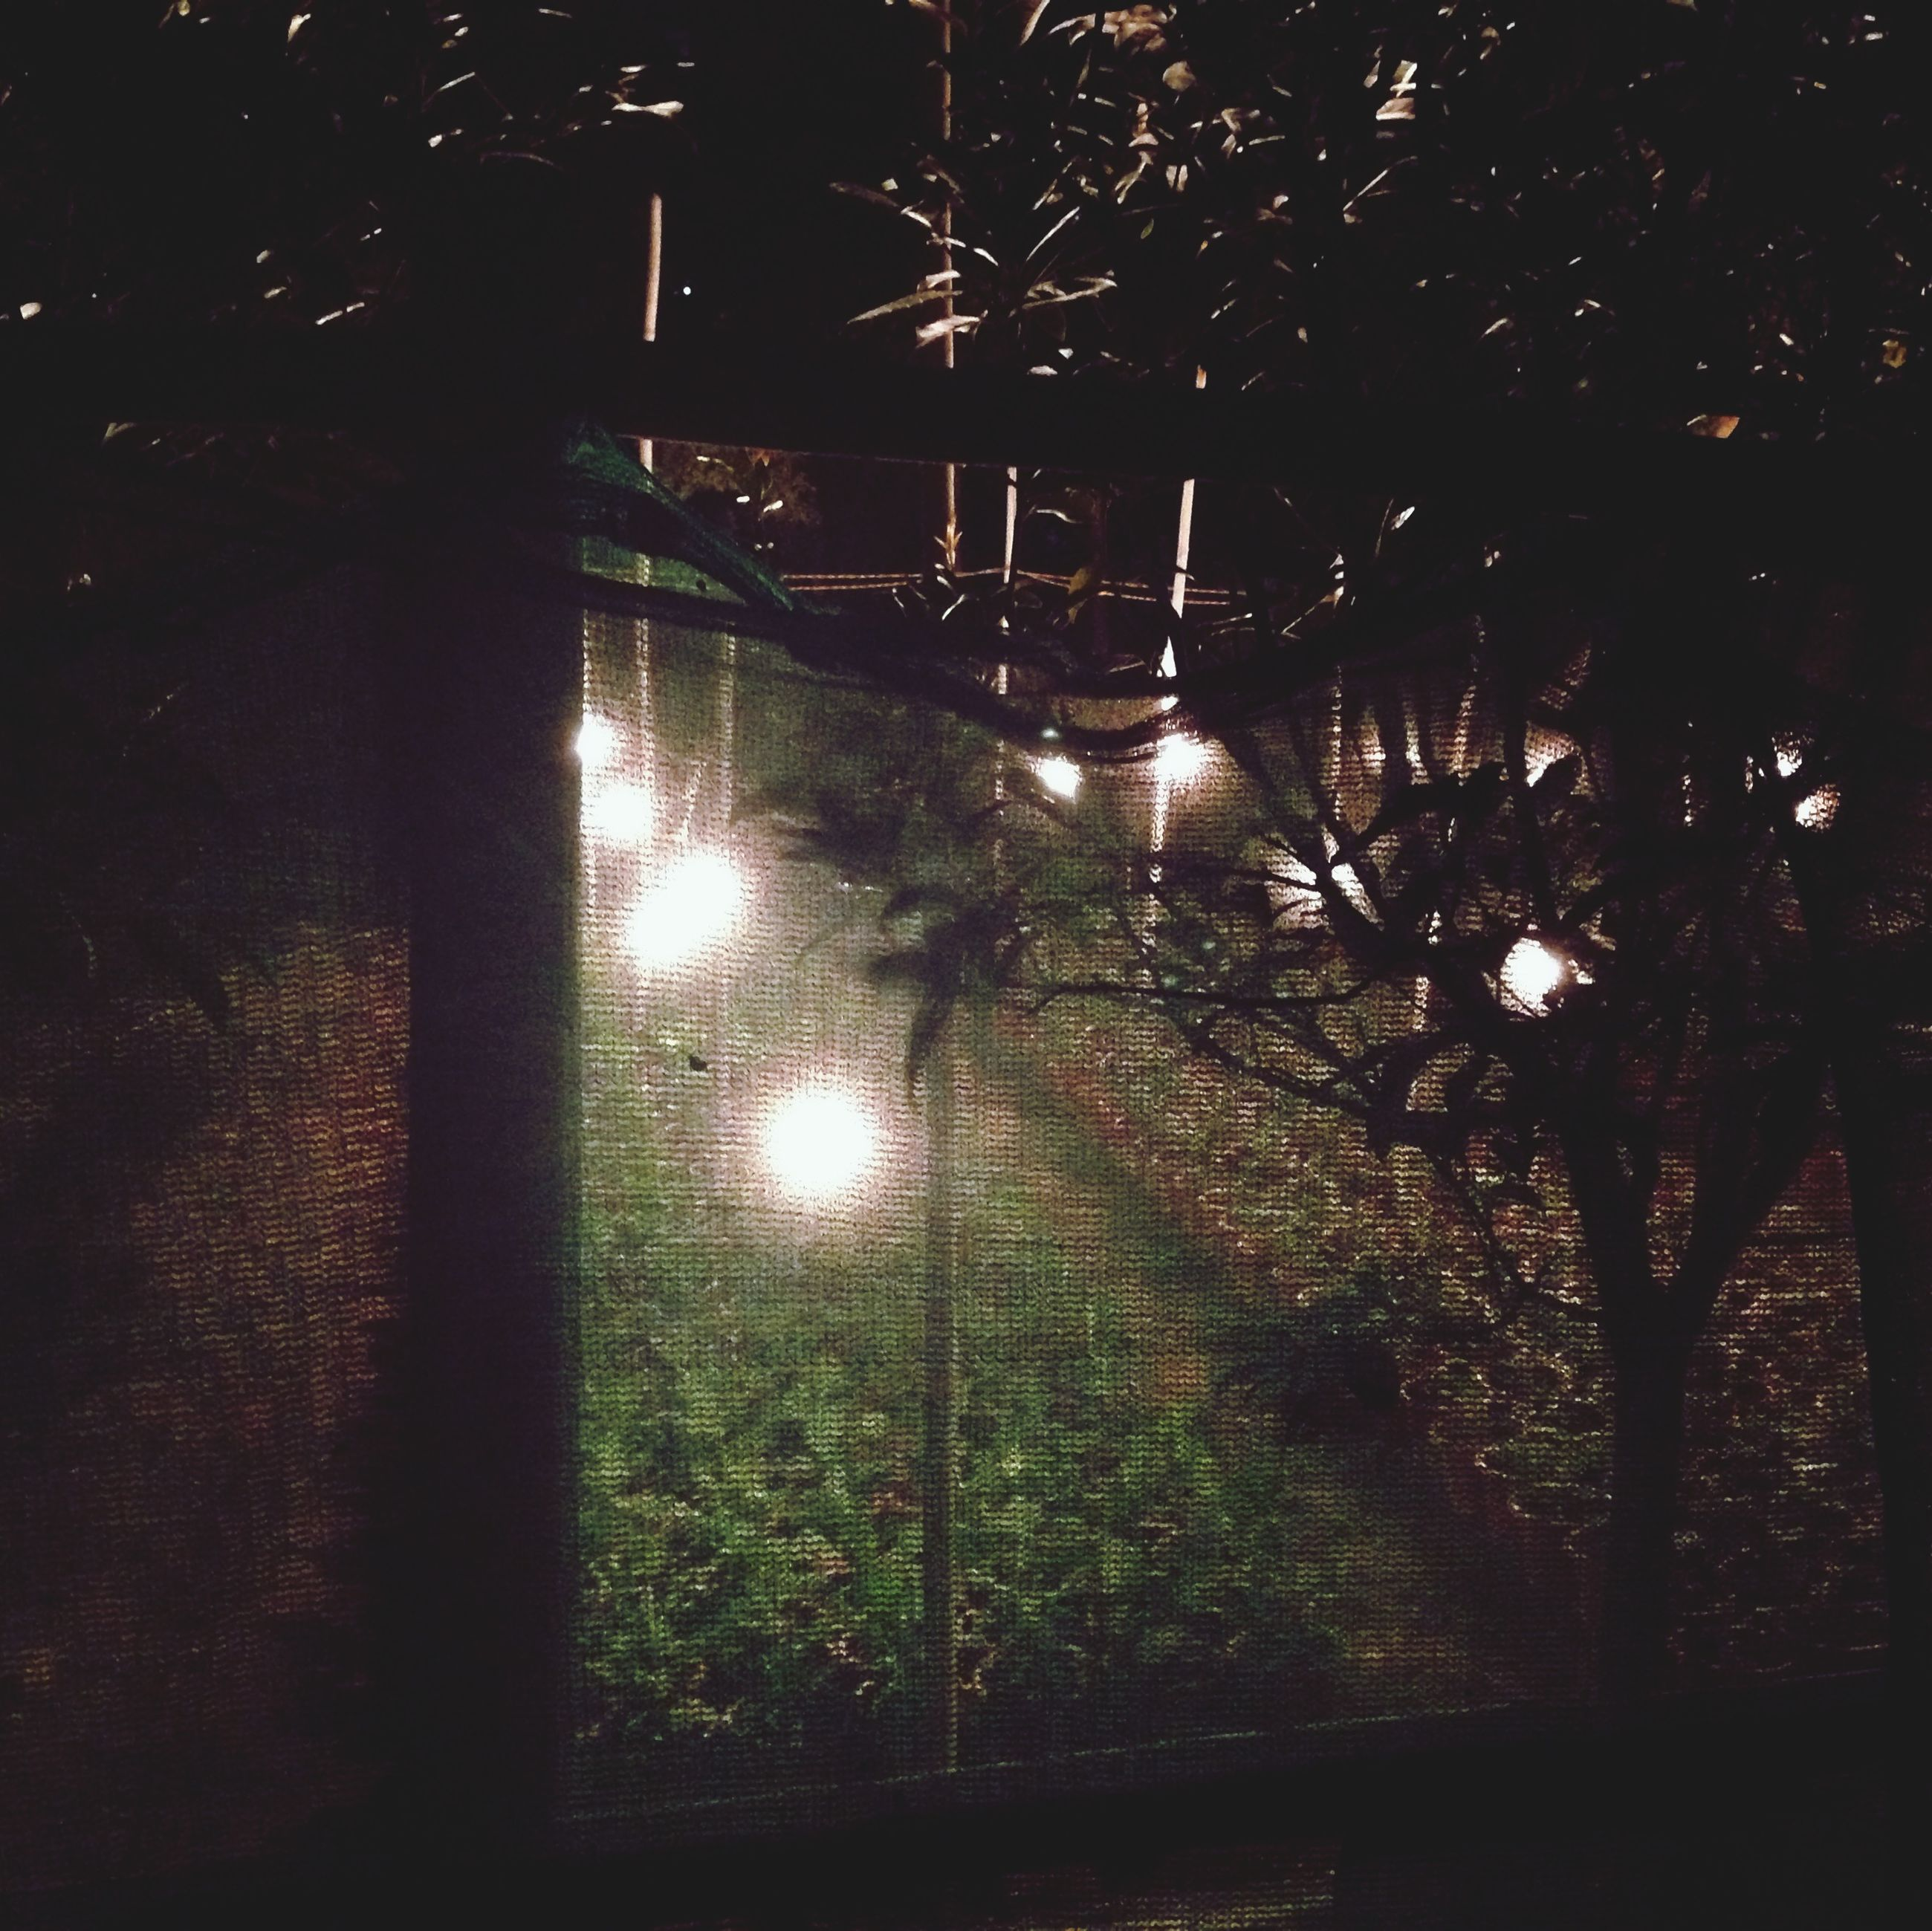 night, illuminated, tree, water, reflection, dark, silhouette, tranquility, growth, nature, tranquil scene, no people, lighting equipment, outdoors, grass, glowing, street light, plant, light - natural phenomenon, branch